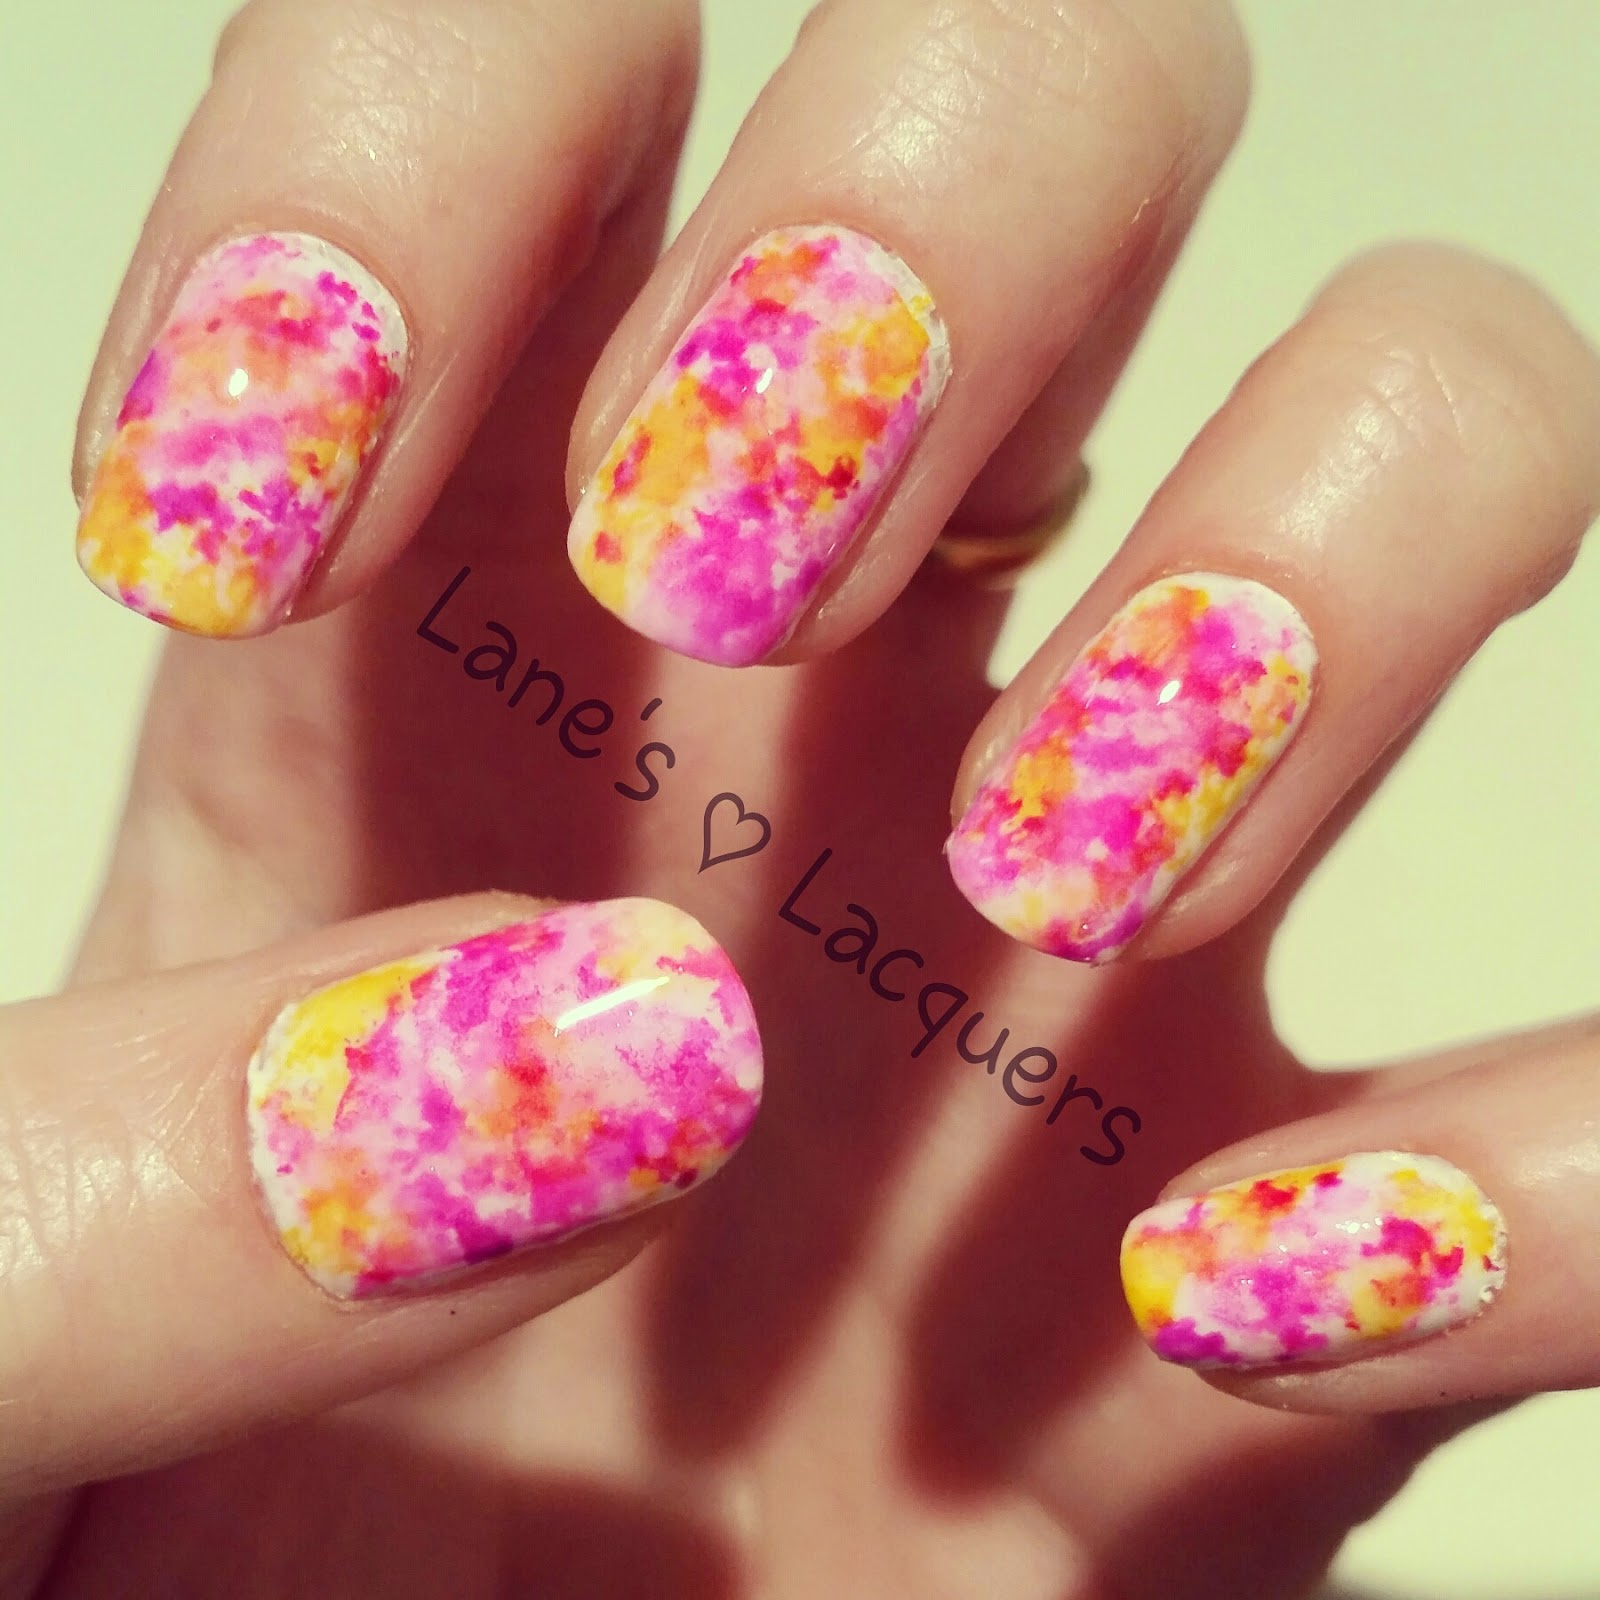 alcohol-ink-pink-purple-yellow-nail-art